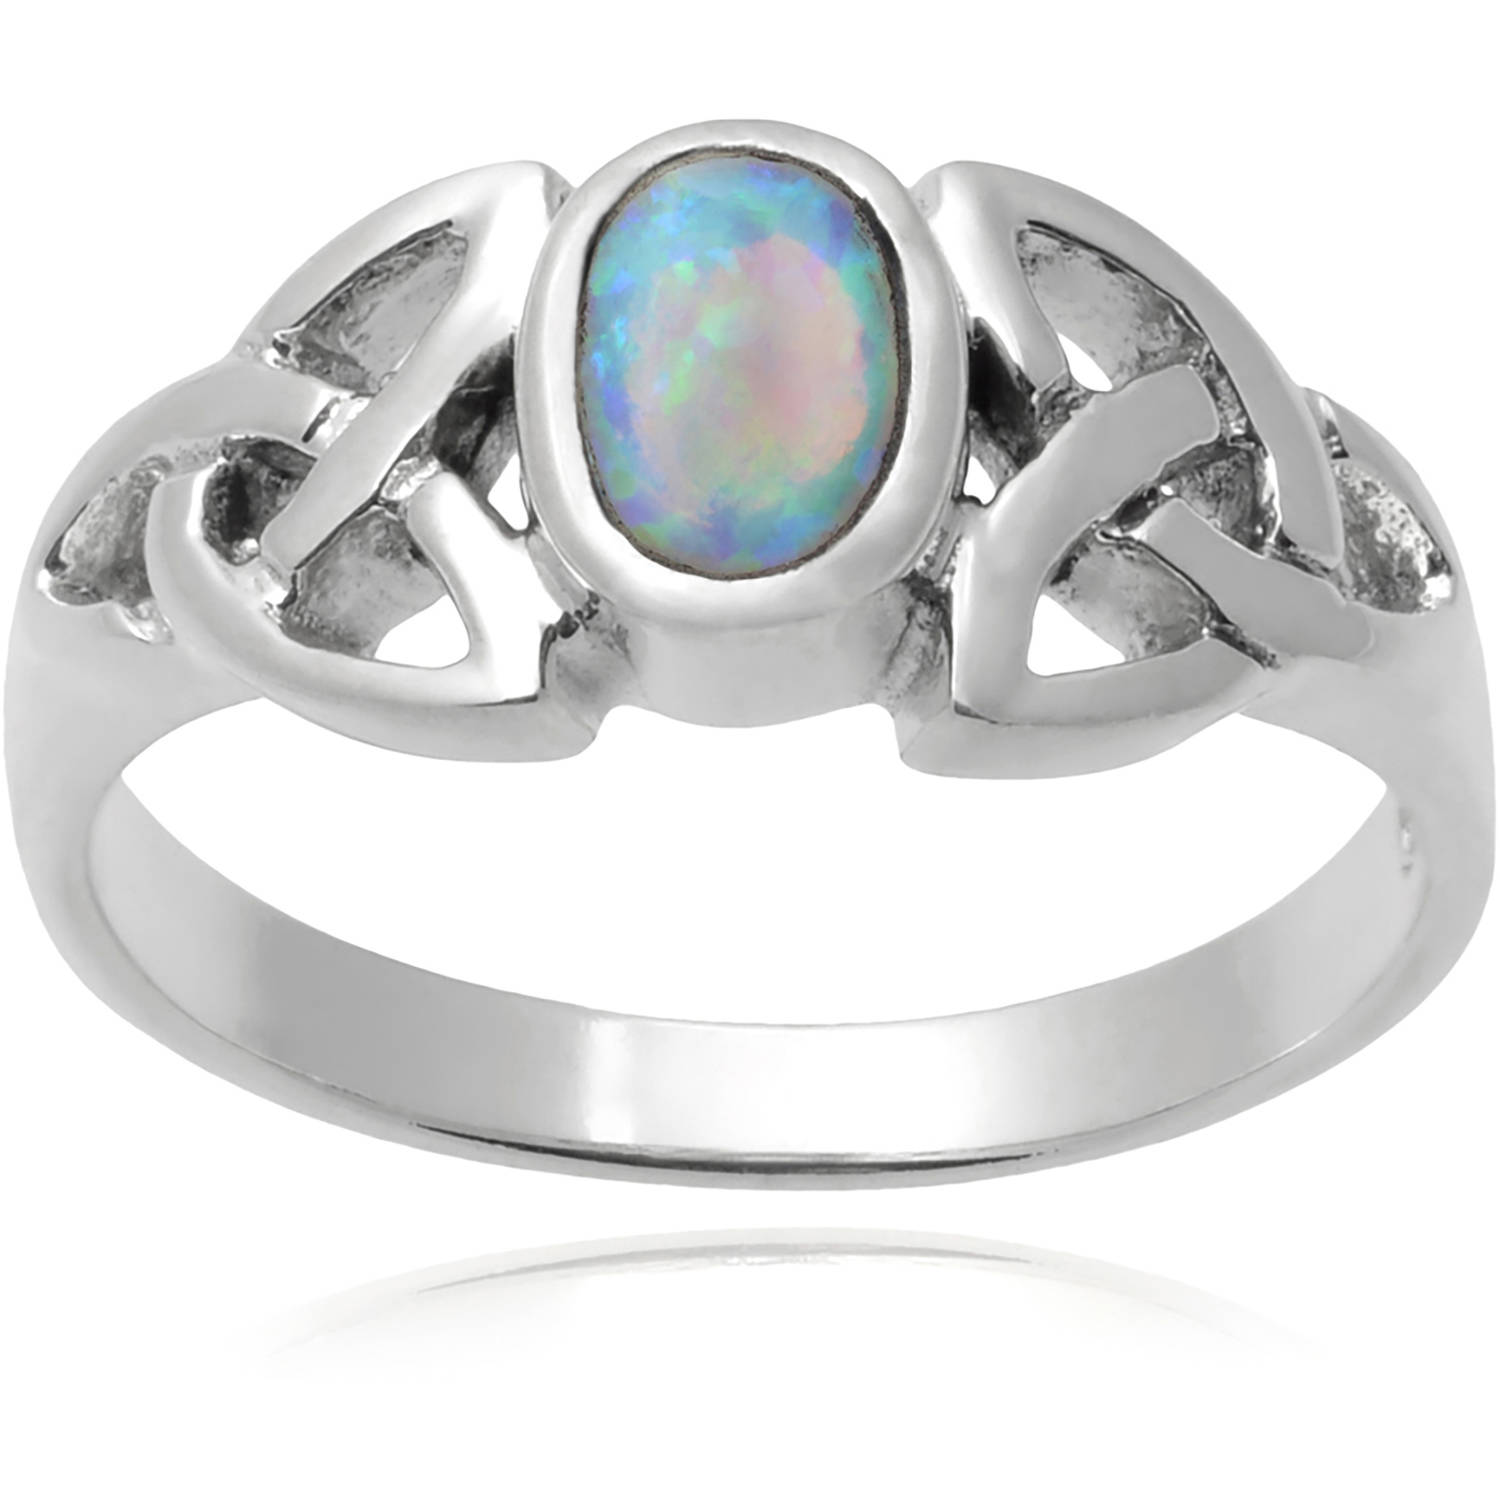 Brinley Co. Women's Opal Sterling Silver Polished Celtic Knot Fashion Ring, Multicolor